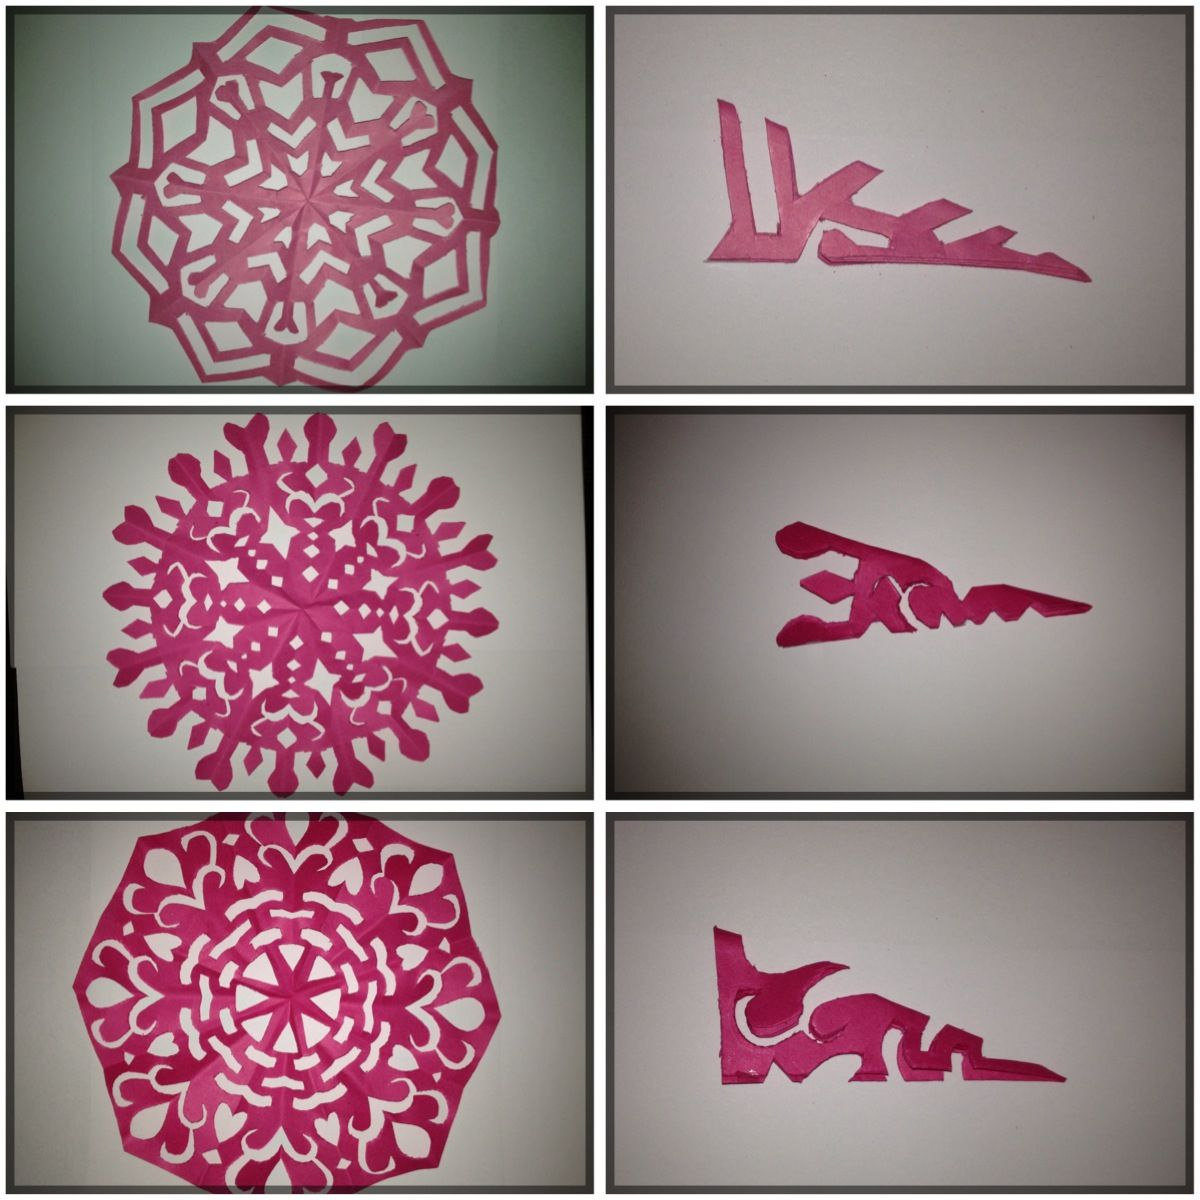 Snowflakes For Christmas Decorations In Pink Papercraft